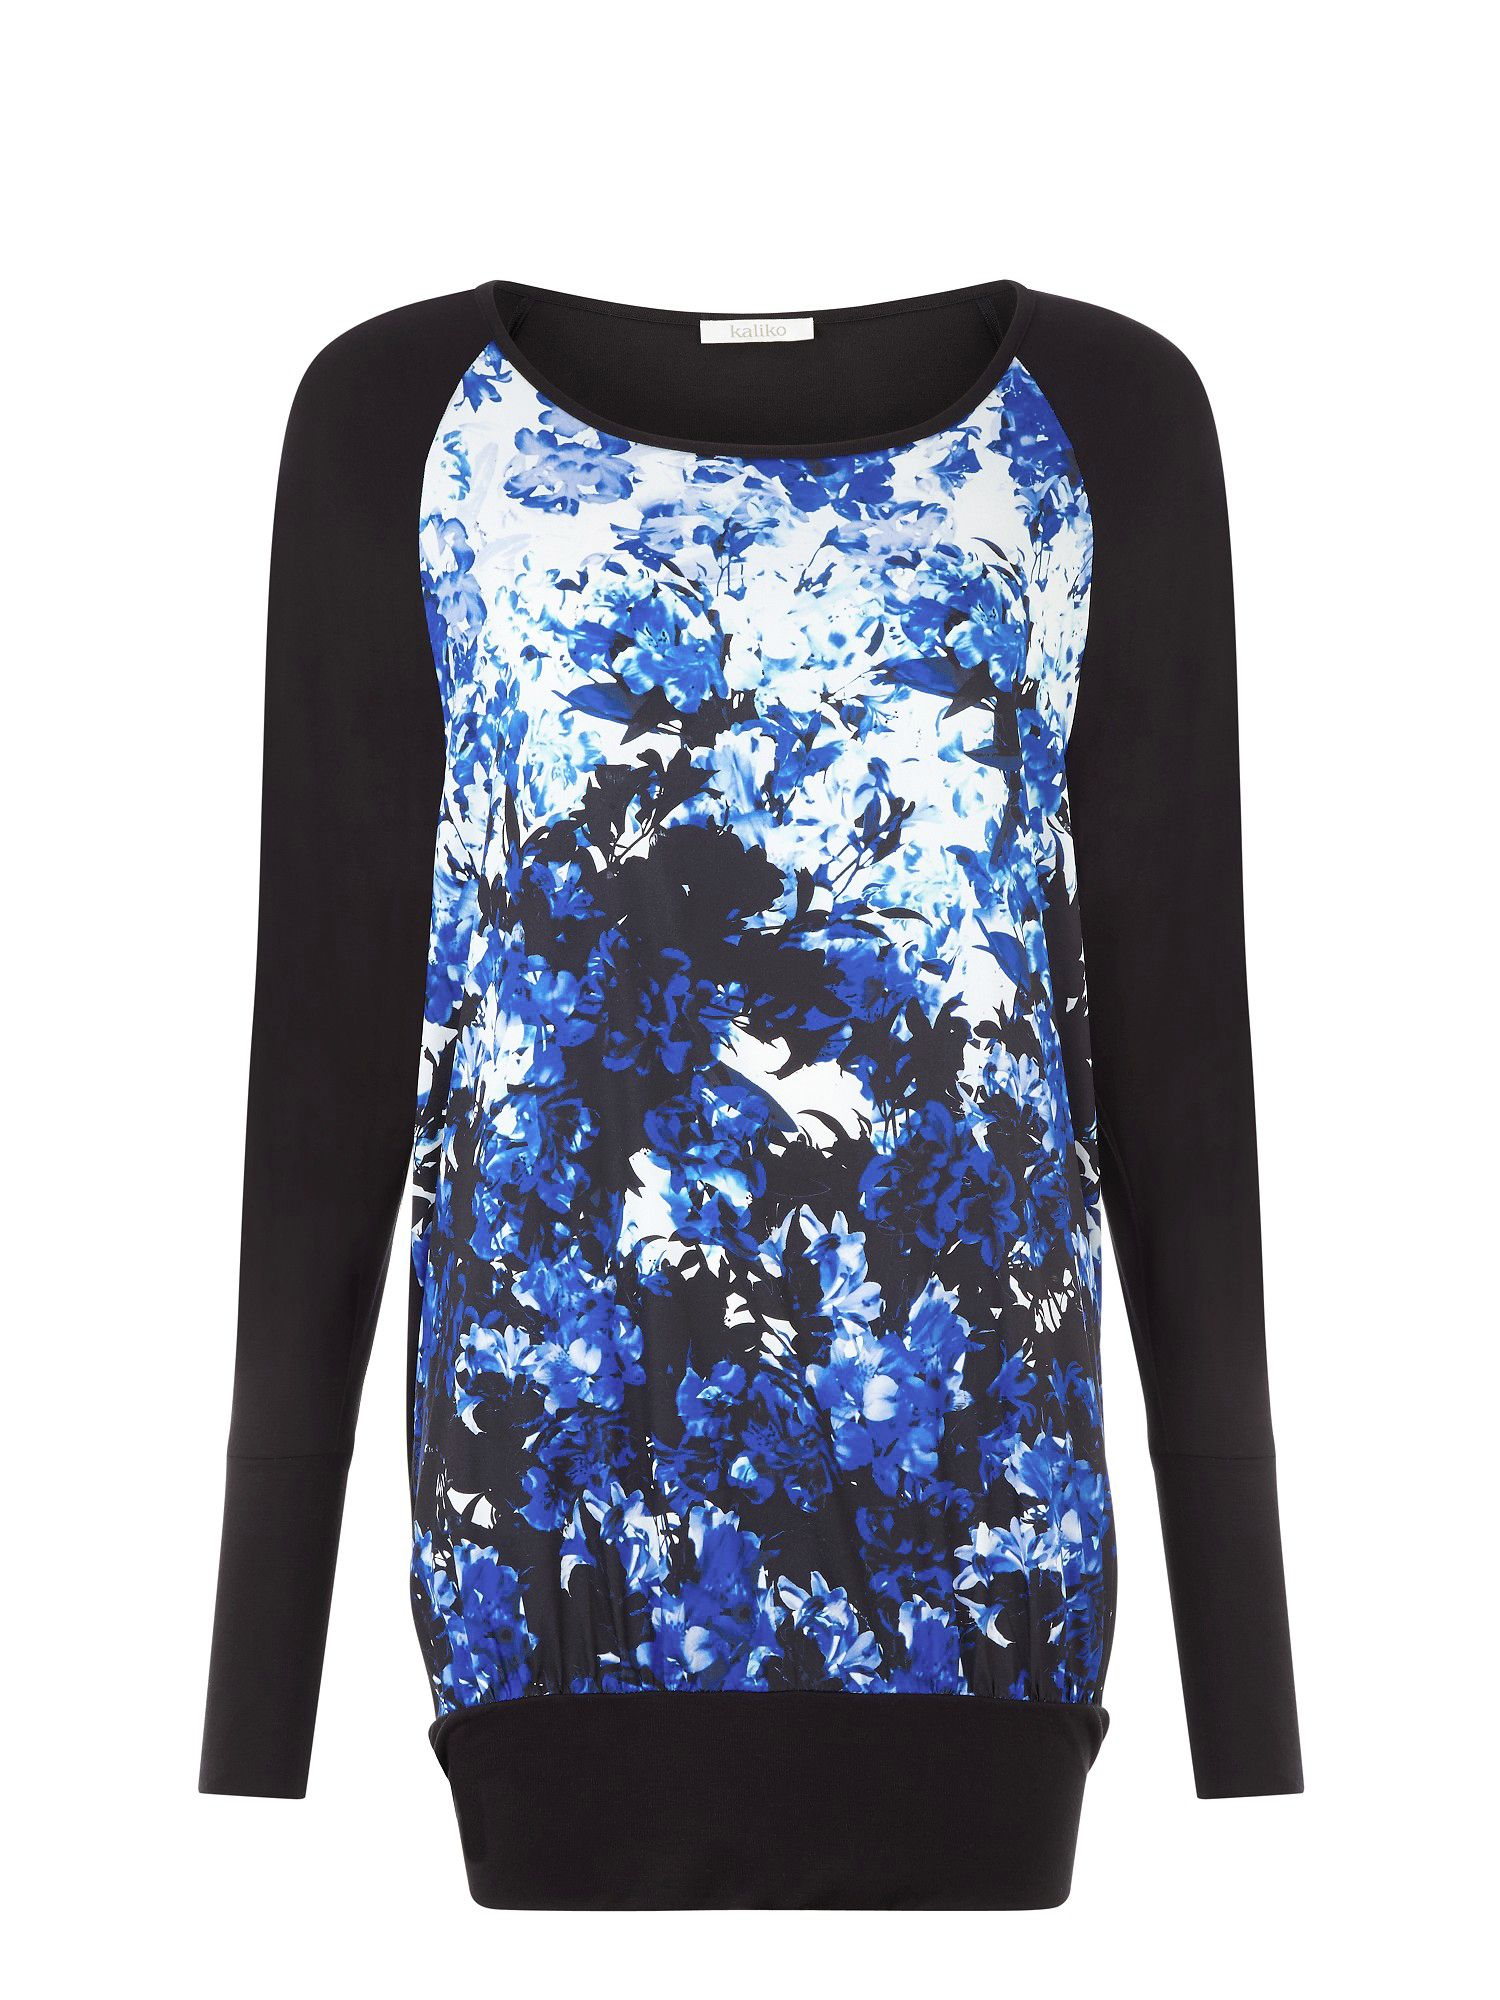 Eastern lilly print longline top